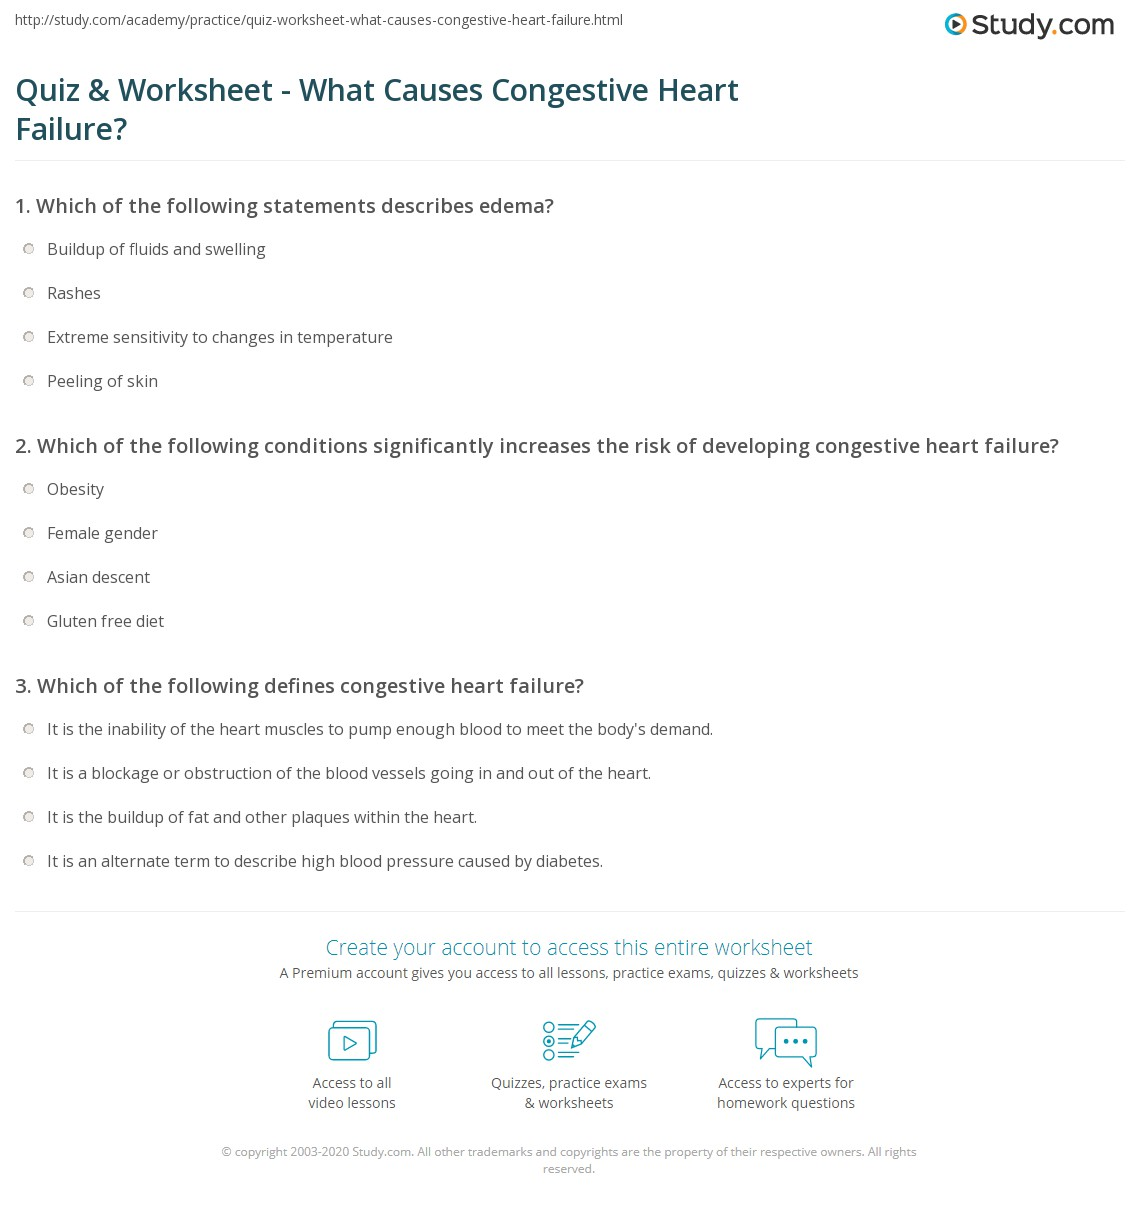 quiz & worksheet - what causes congestive heart failure? | study